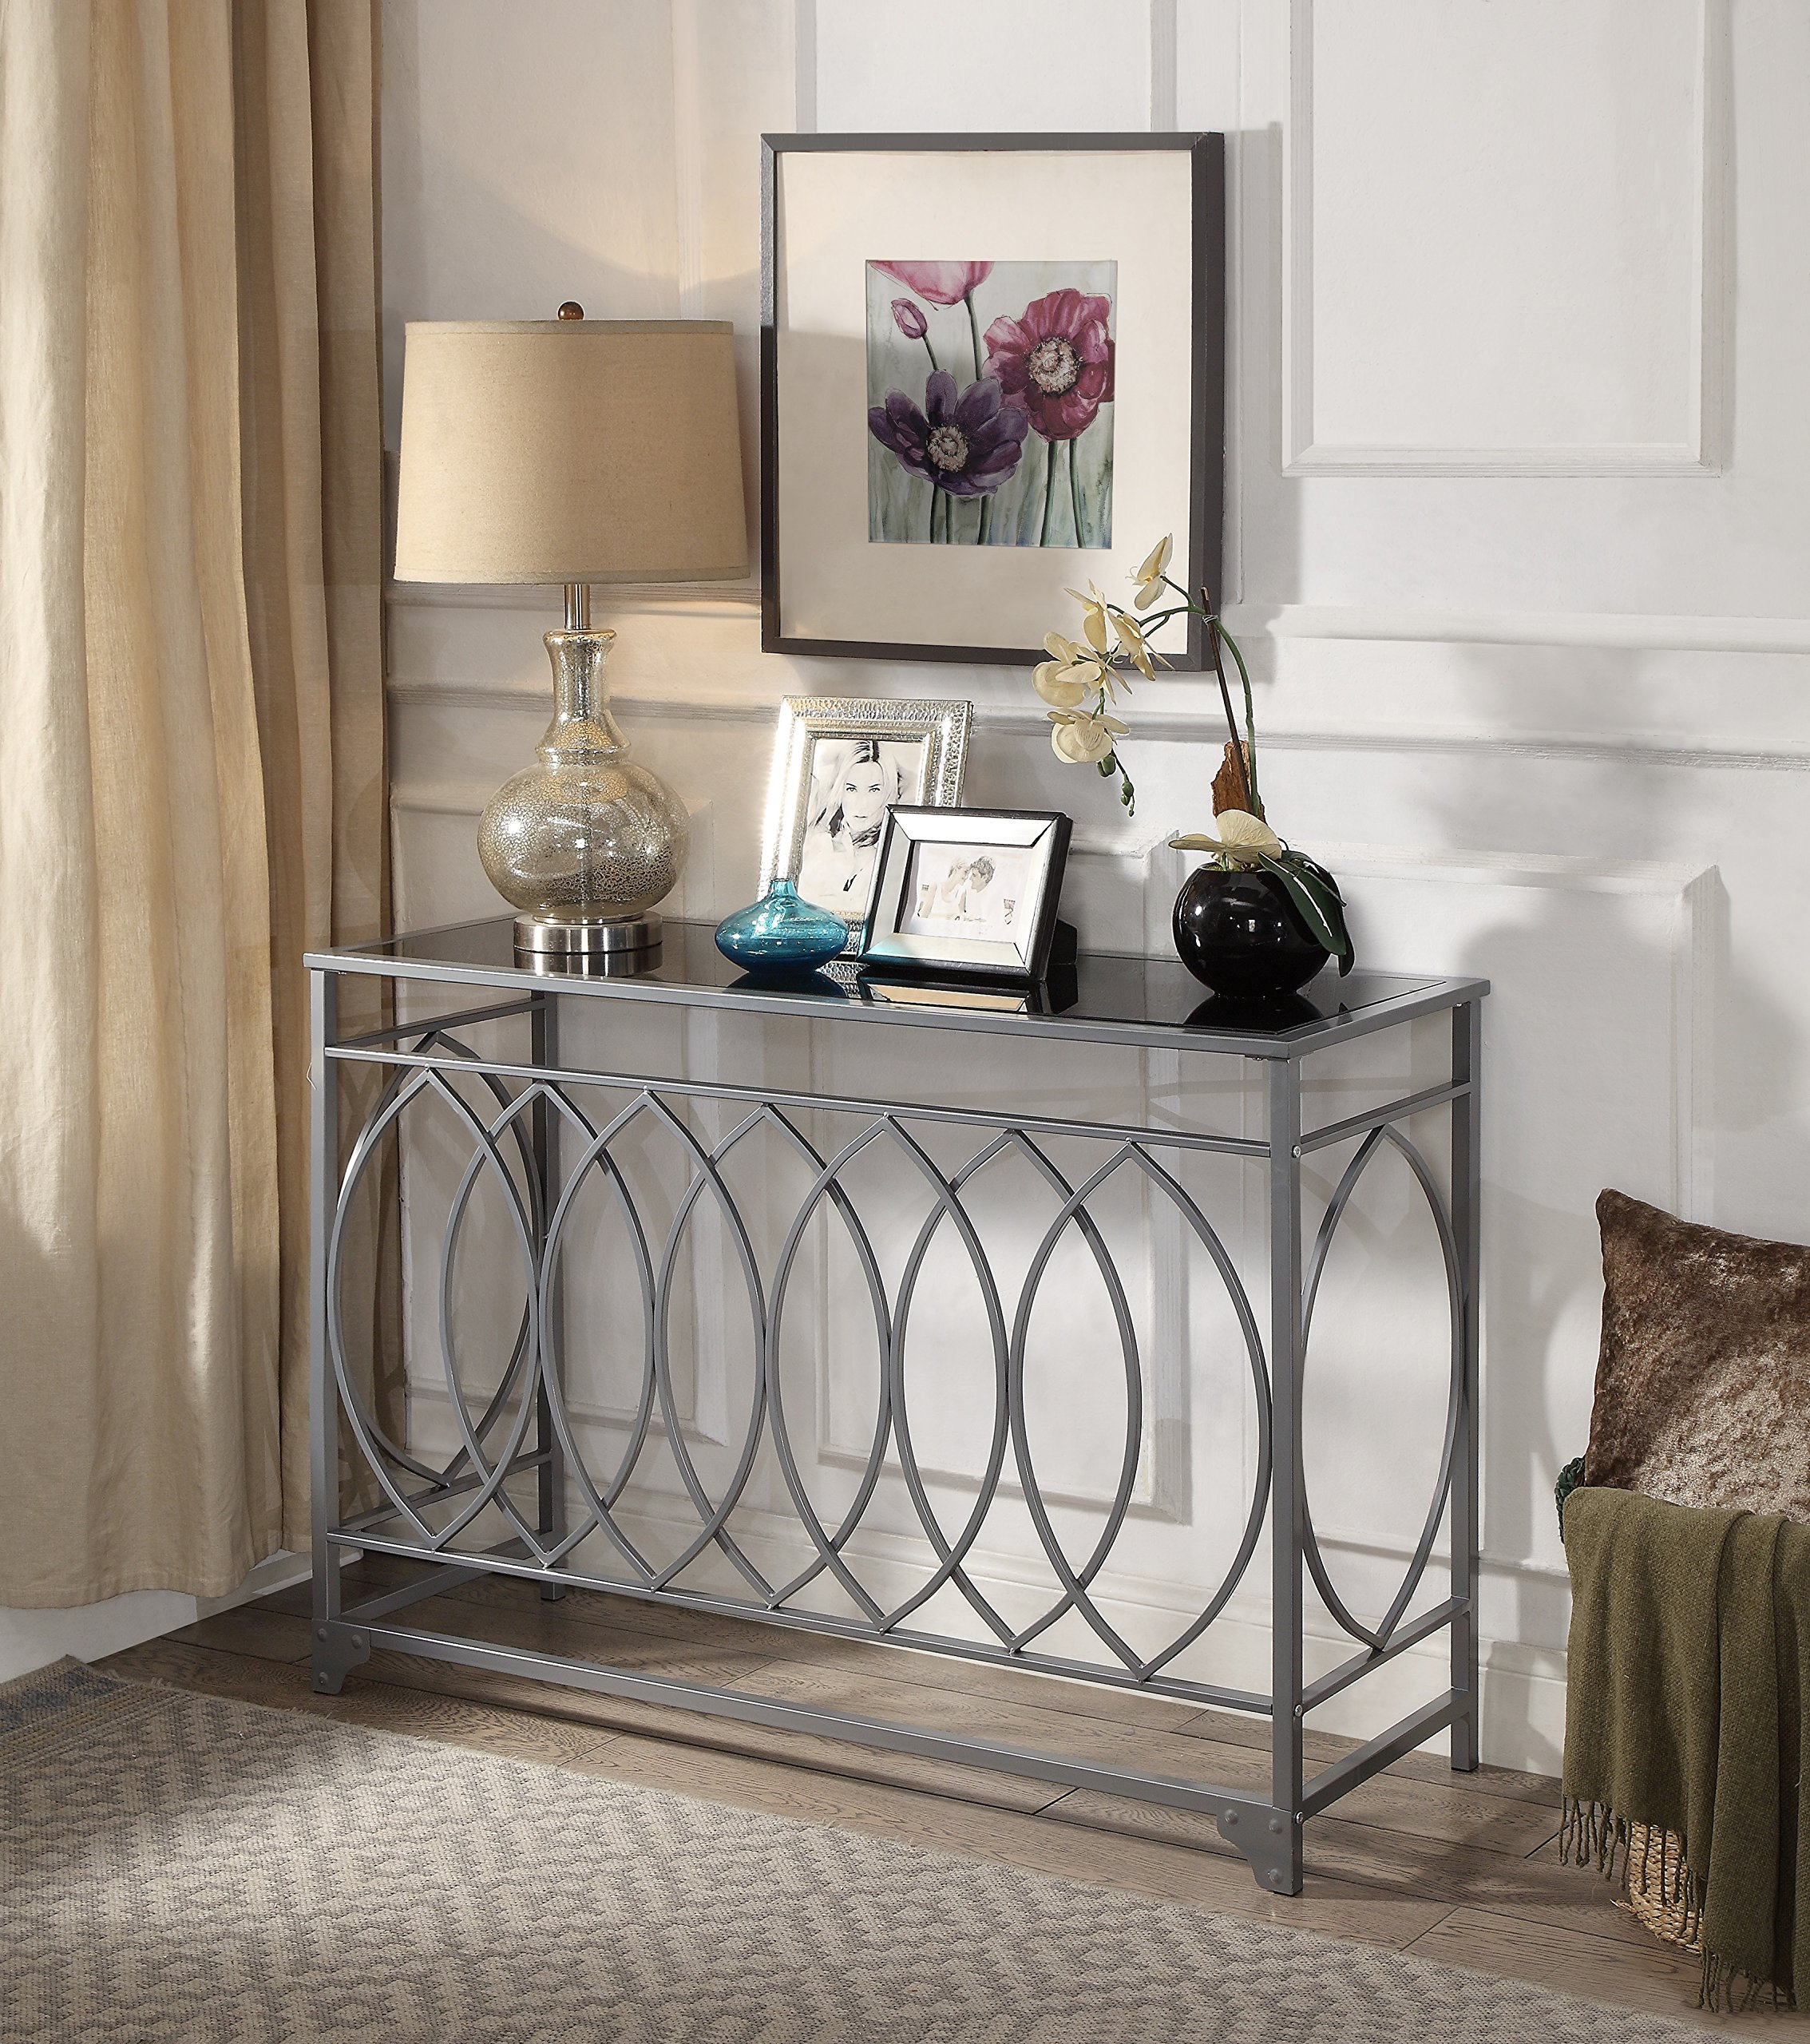 entryway console table. Living Room Entryway Console Table Black Silver Tempered Glass Modern Home Decor